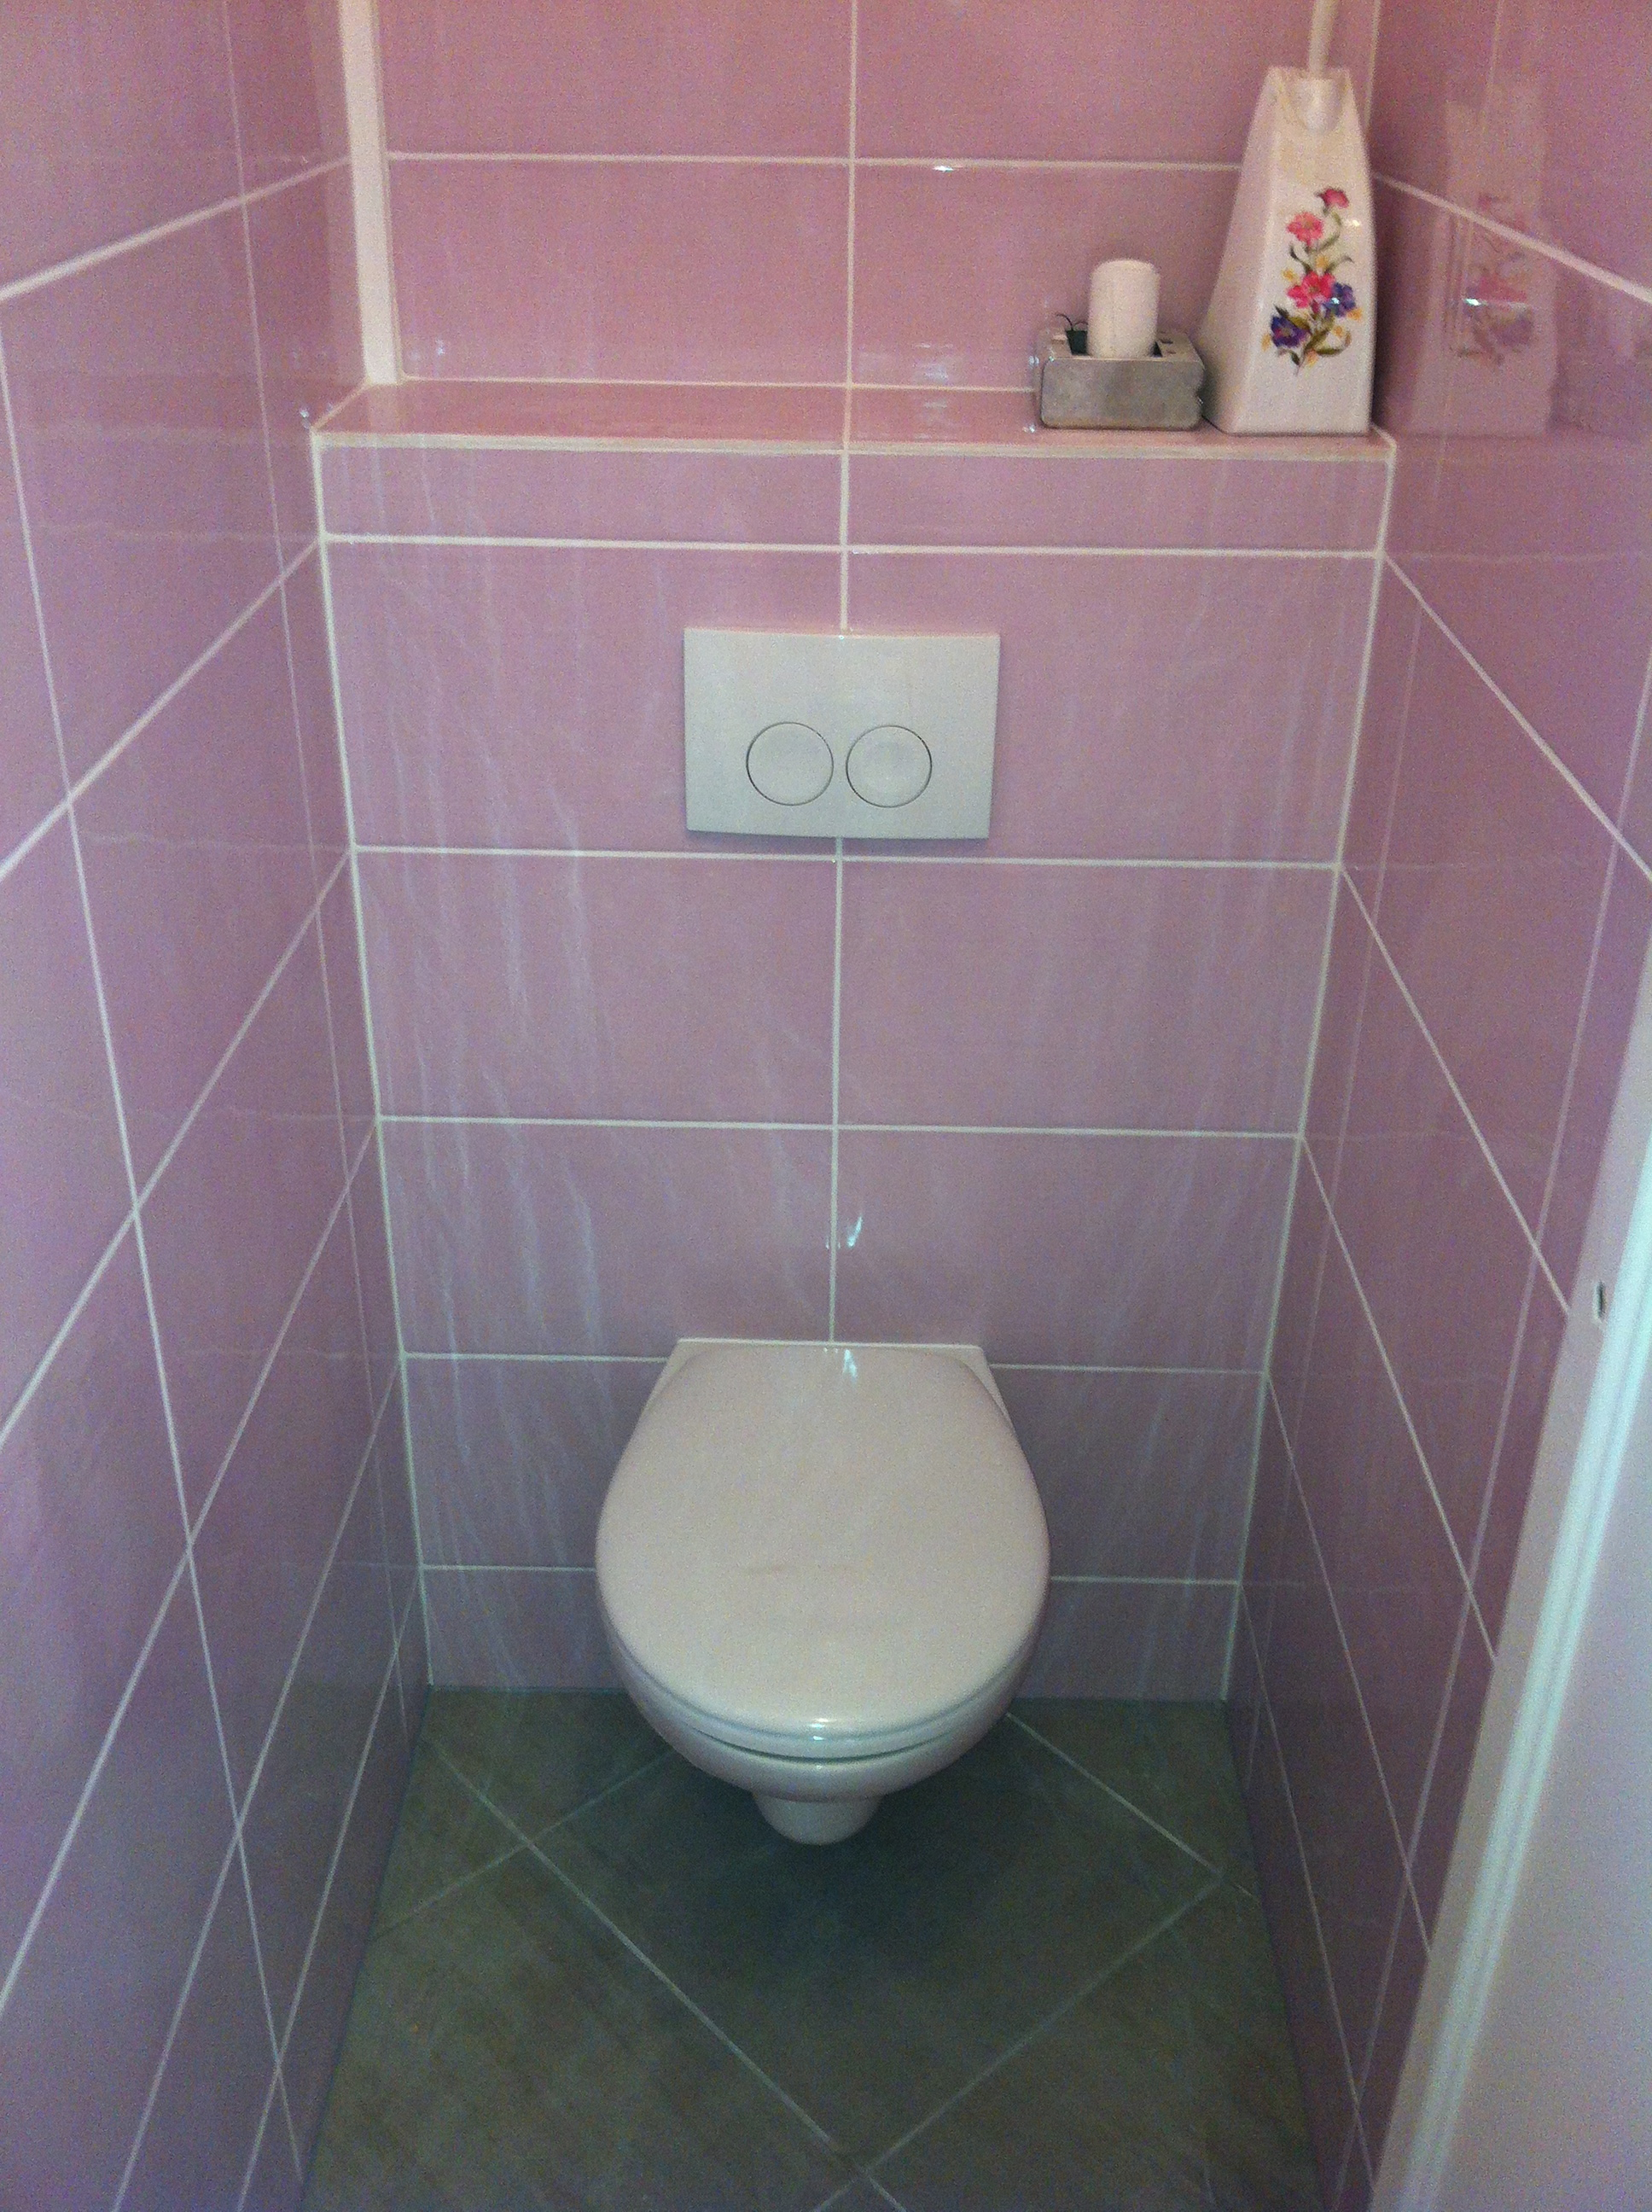 Wc suspendu wc encastr dream house for Carrelage pour wc suspendu